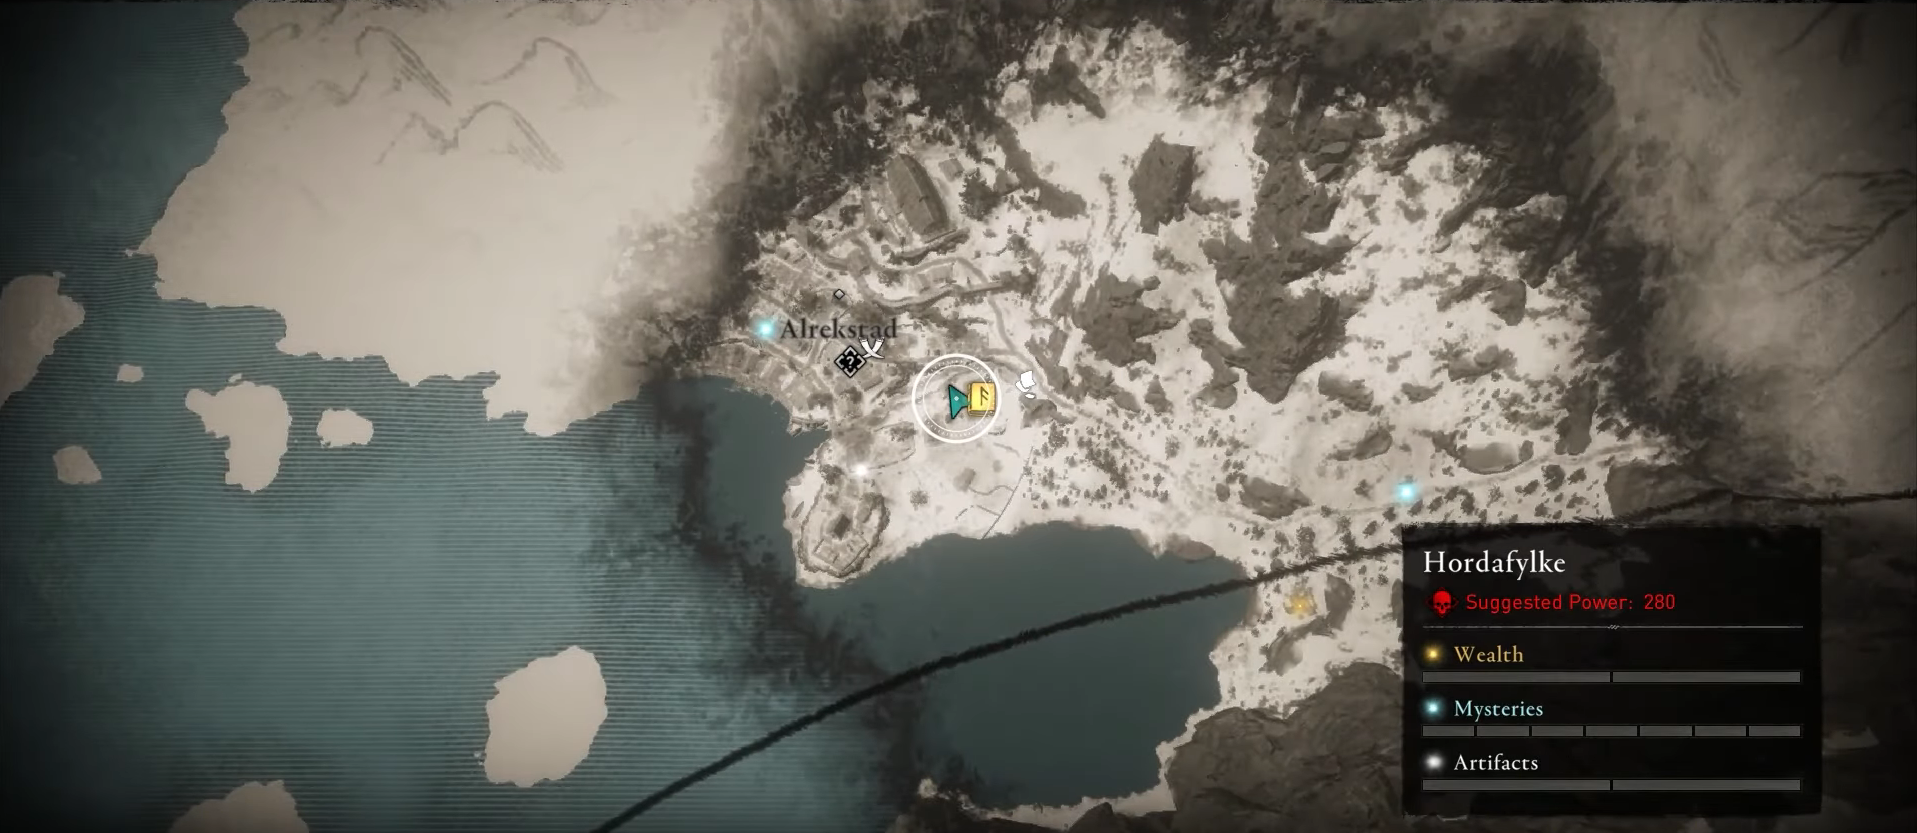 Assassin's Creed Valhalla Abilities Locations